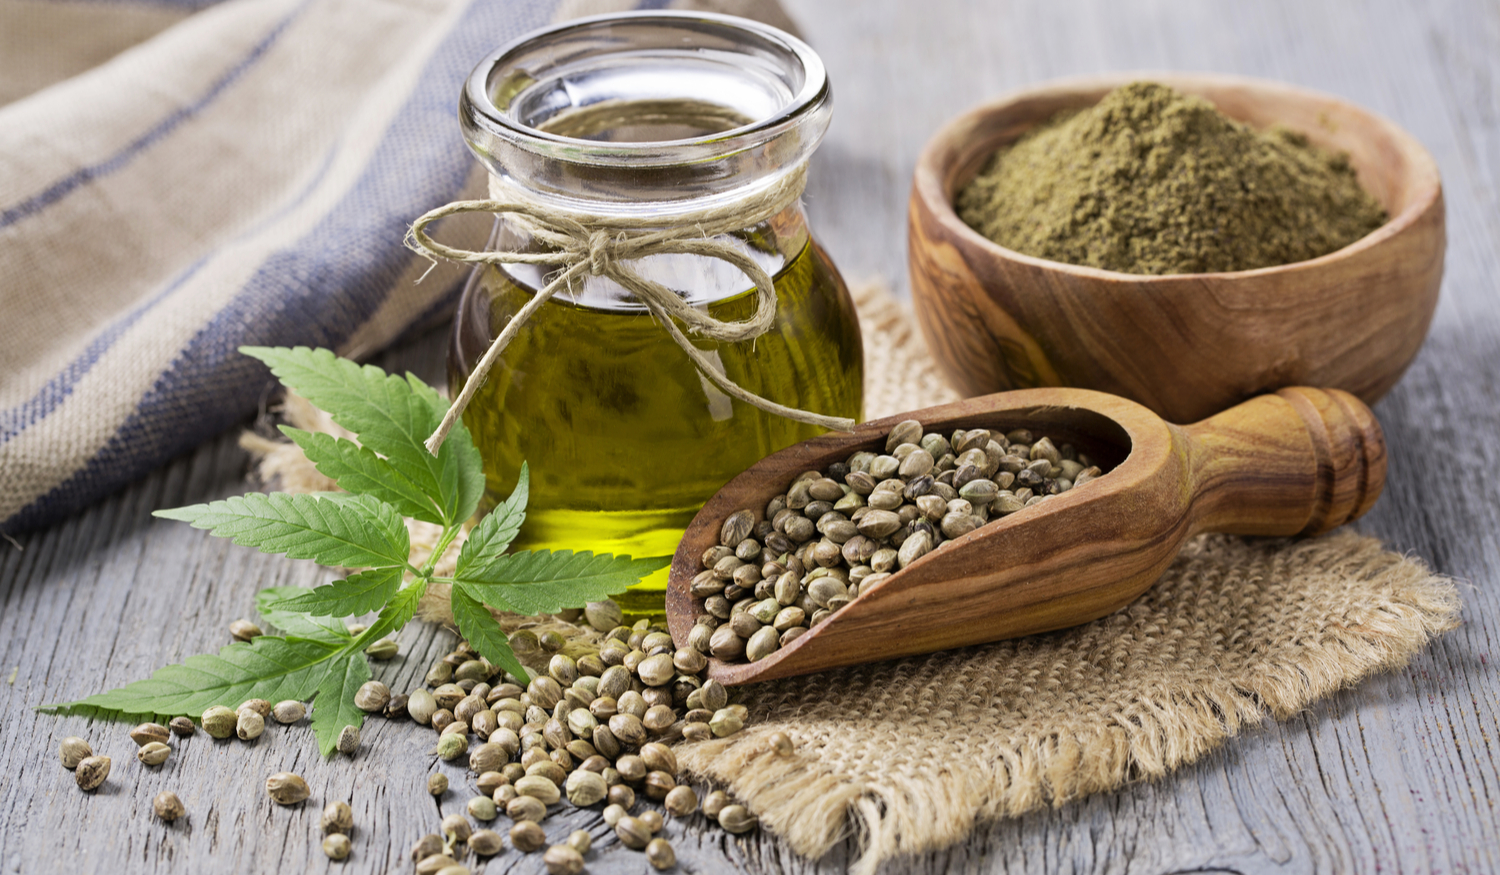 Photo of hemp oil and seeds